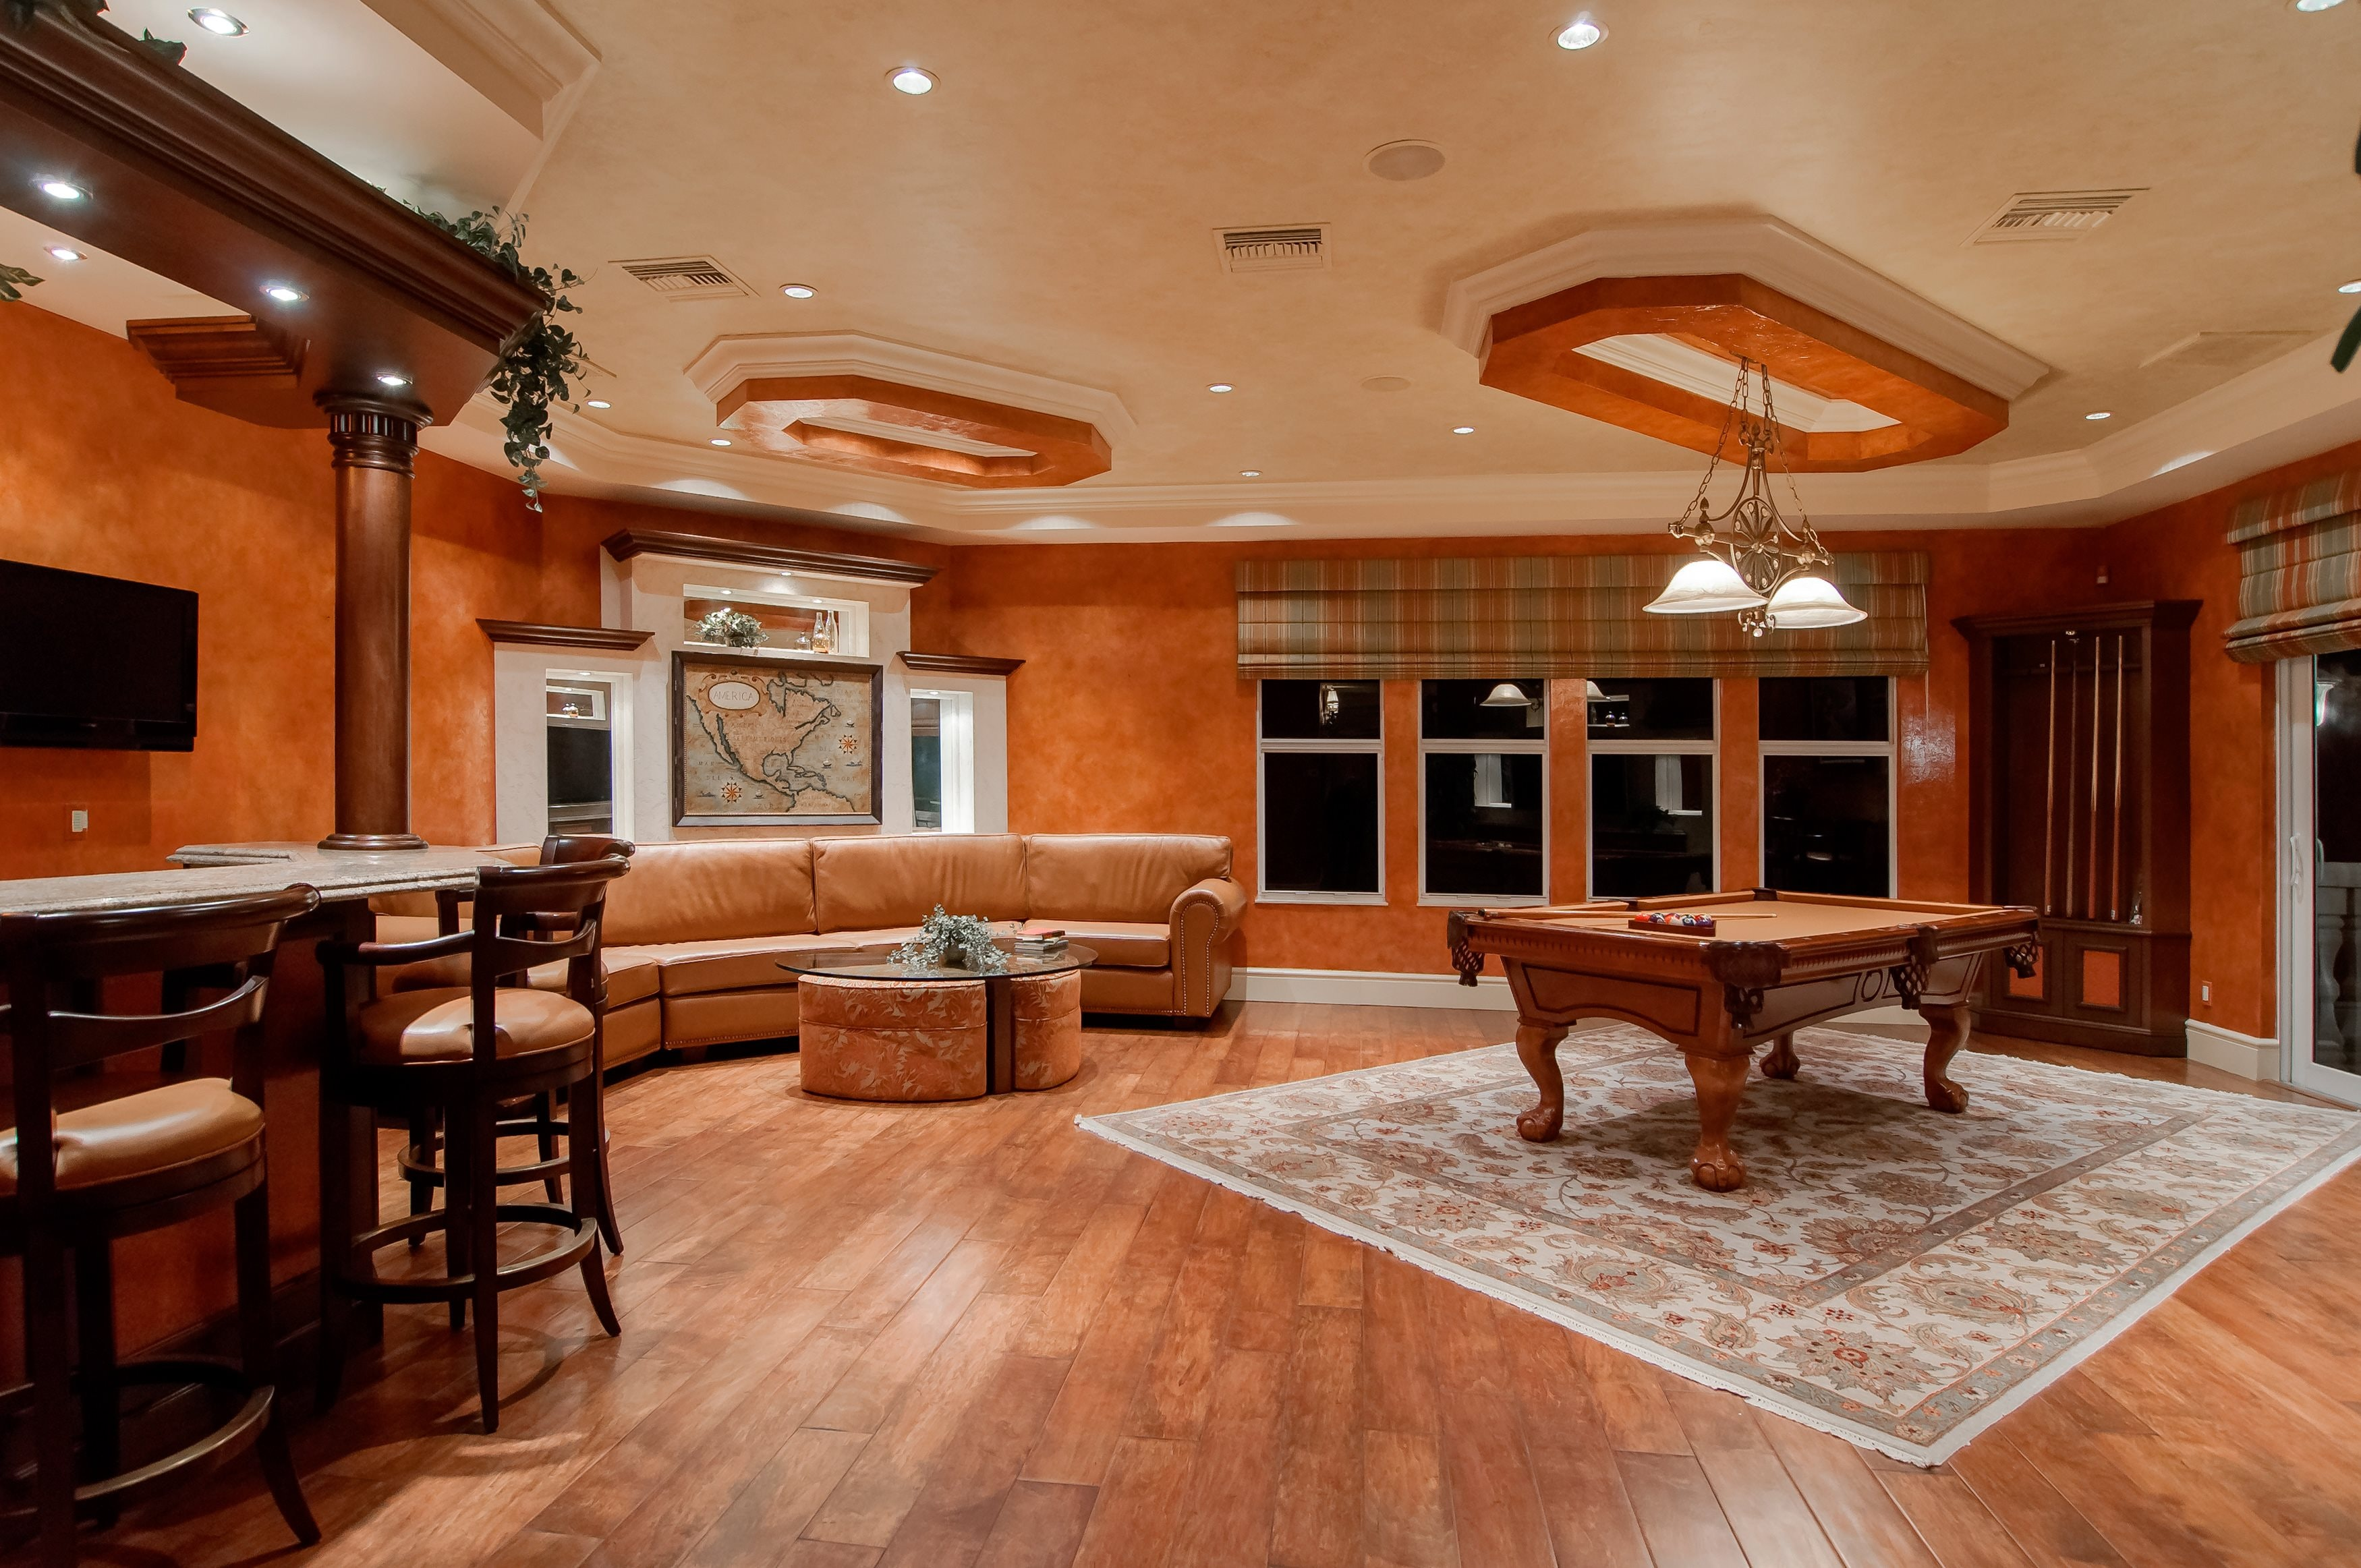 billiard table in center of brown painted room